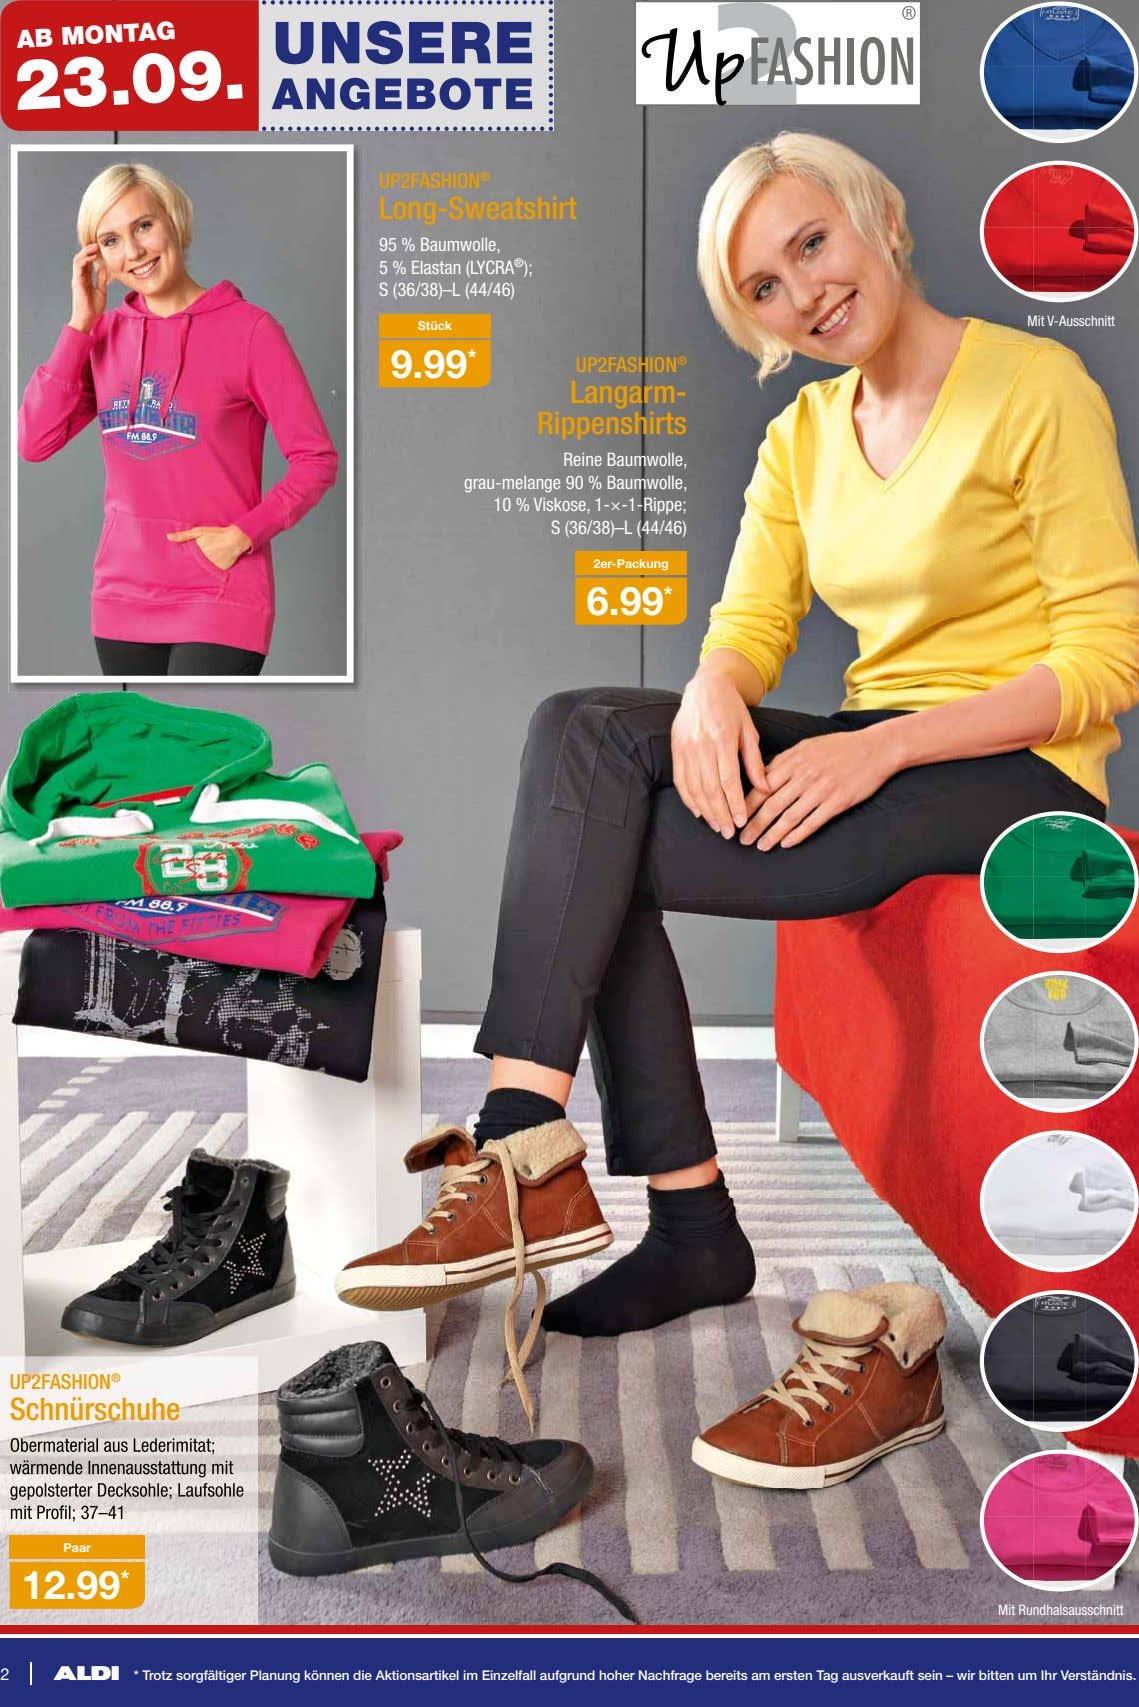 AB MONTAG 23.09. UP2FASHION ® Long-Sweatshirt 95 % Baumwolle, 5 % Elastan (LYCRA ® );